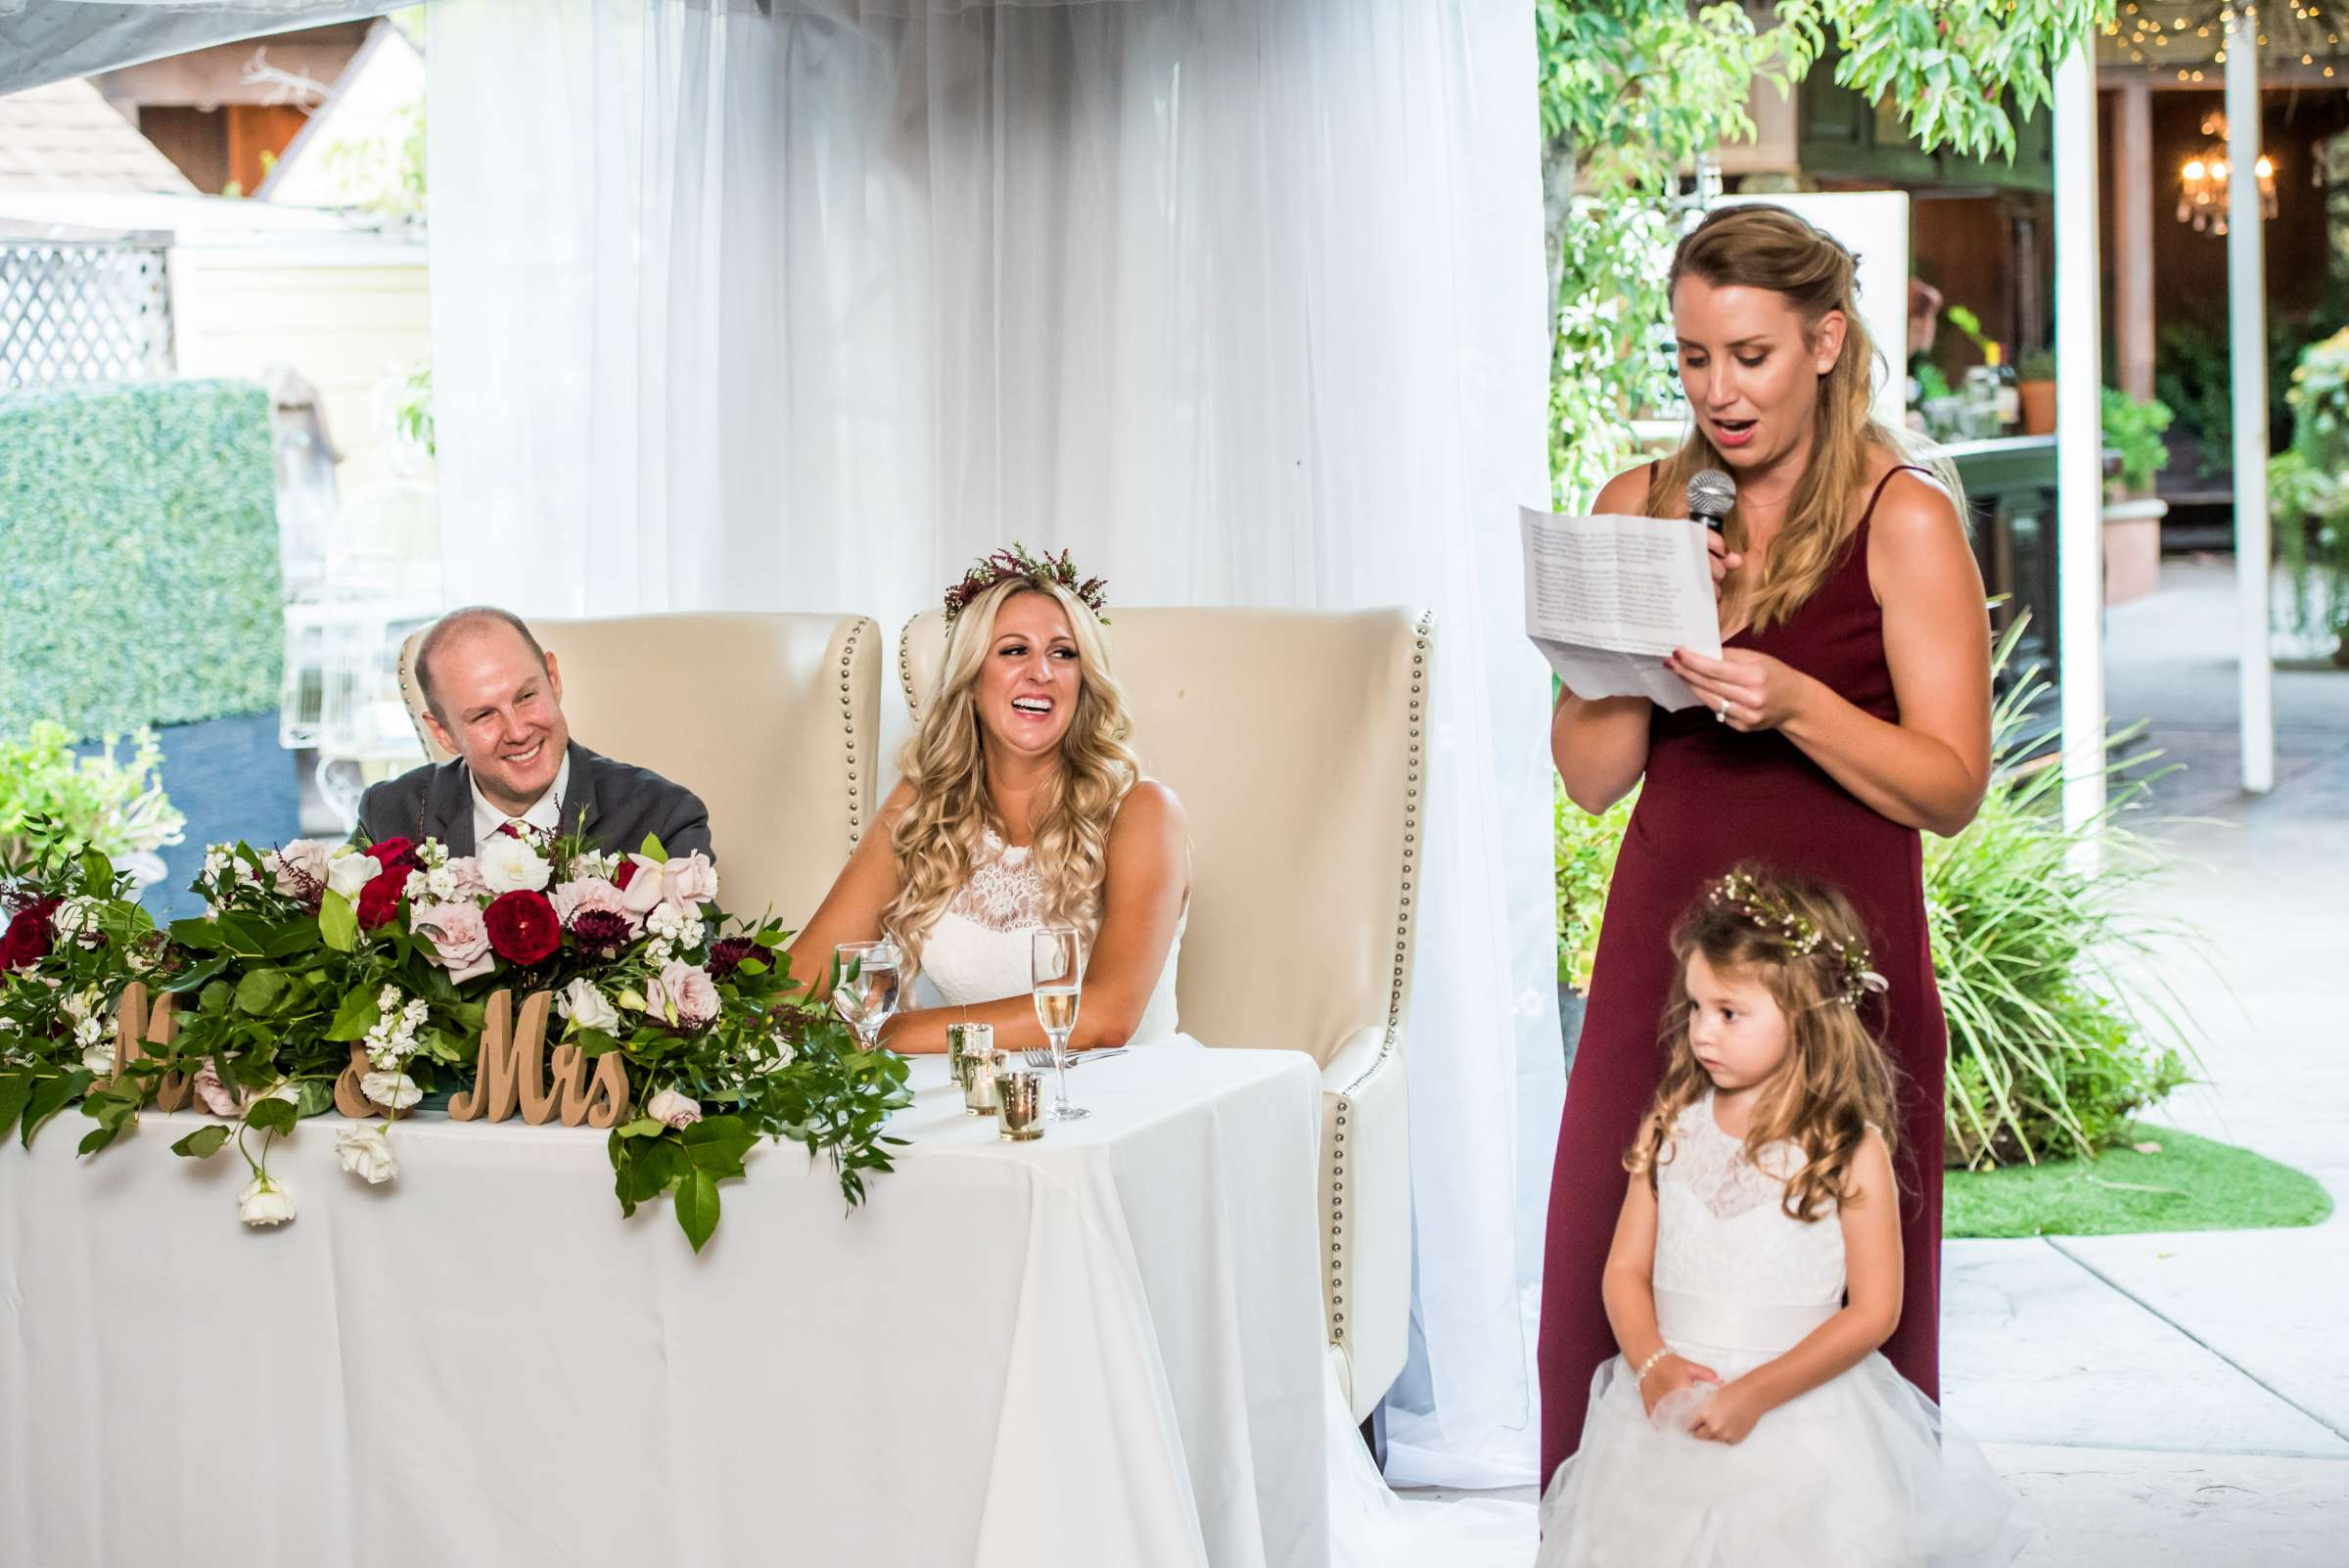 Twin Oaks House & Gardens Wedding Estate Wedding, Brittany and Sean Wedding Photo #113 by True Photography